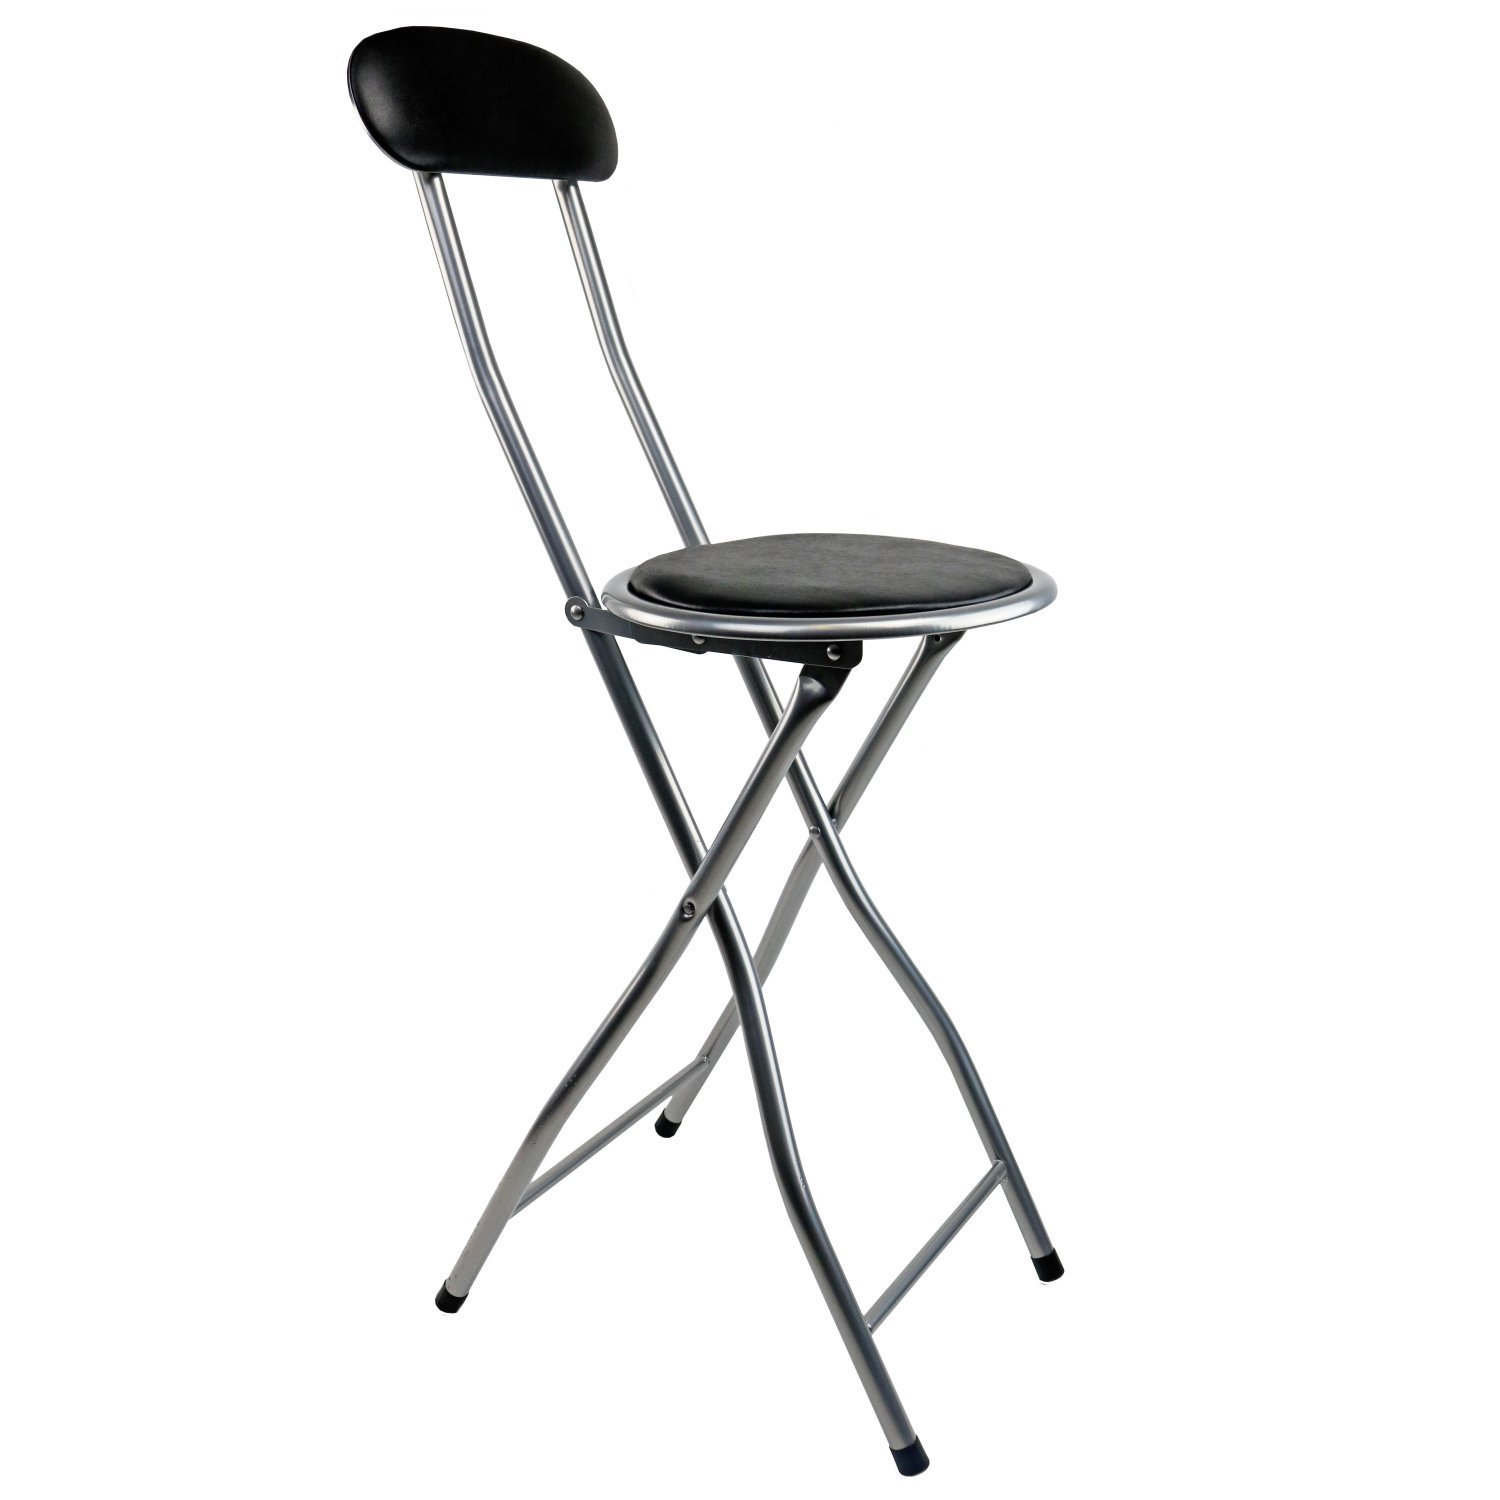 Folding Chairs Garden & Outdoors Amazon